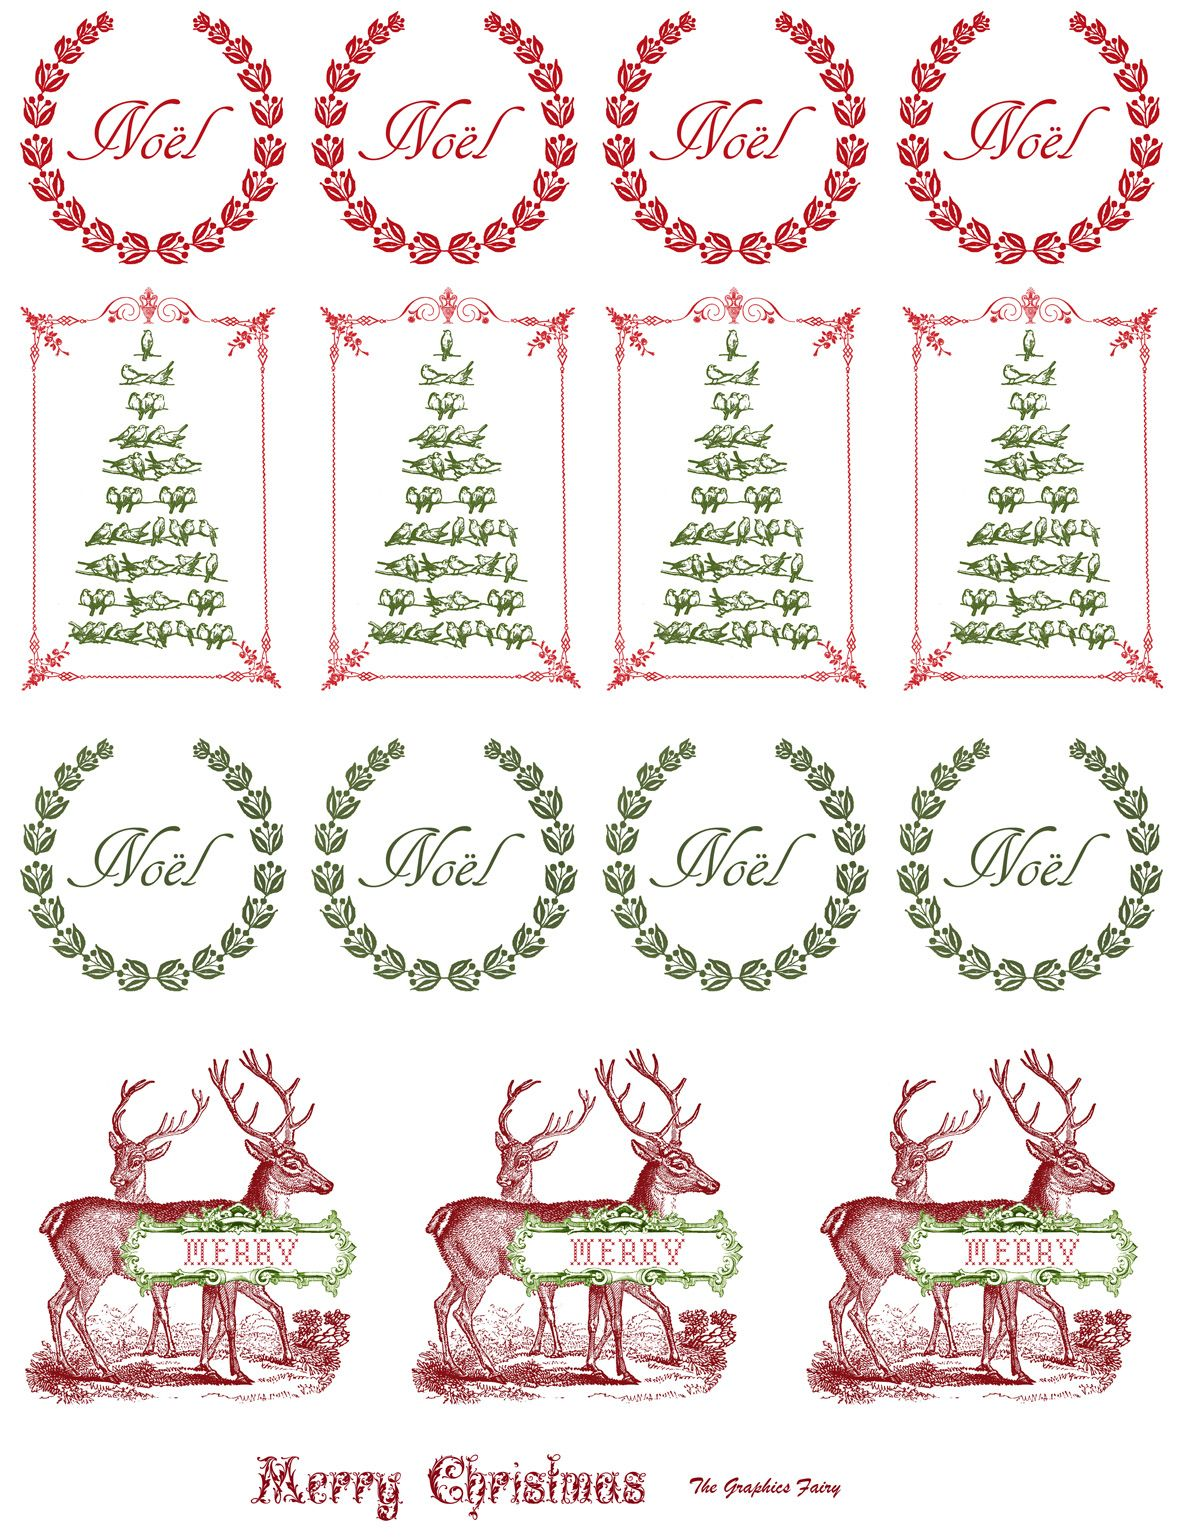 photo relating to Free Printable Christmas Stickers referred to as Printable - Basic Xmas Stickers Merkimiðar